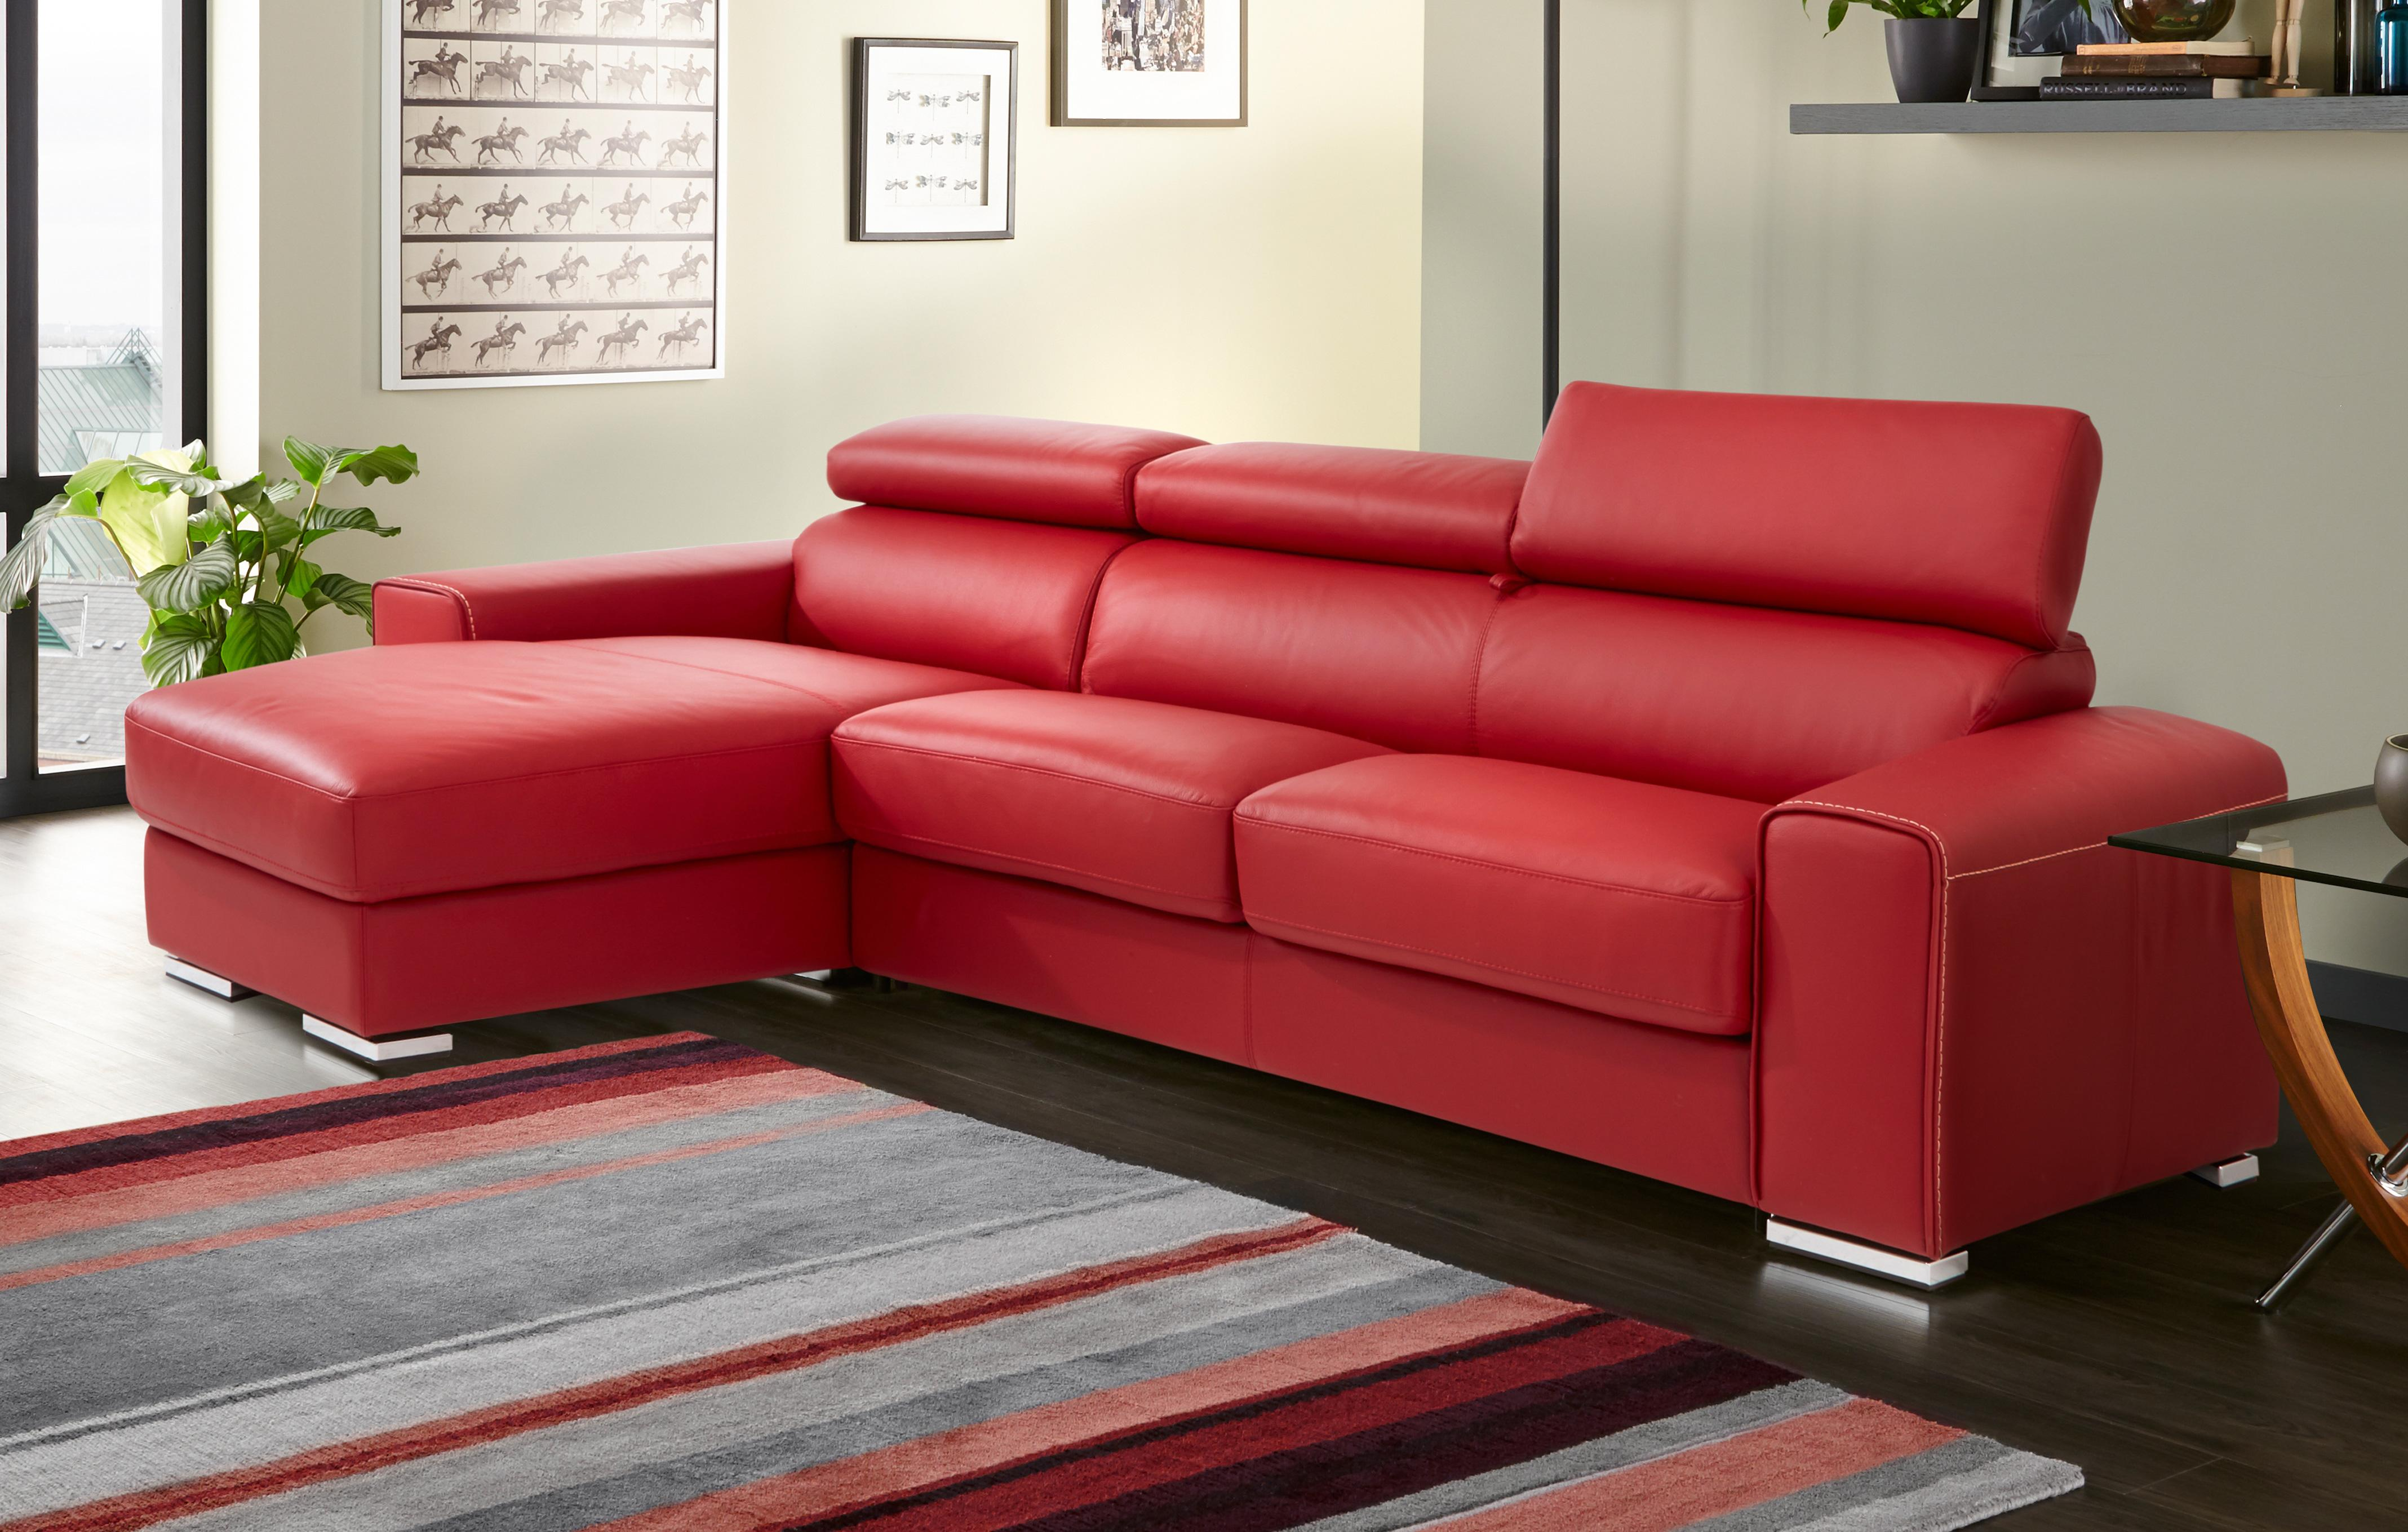 dfs red corner sofa bed. Black Bedroom Furniture Sets. Home Design Ideas